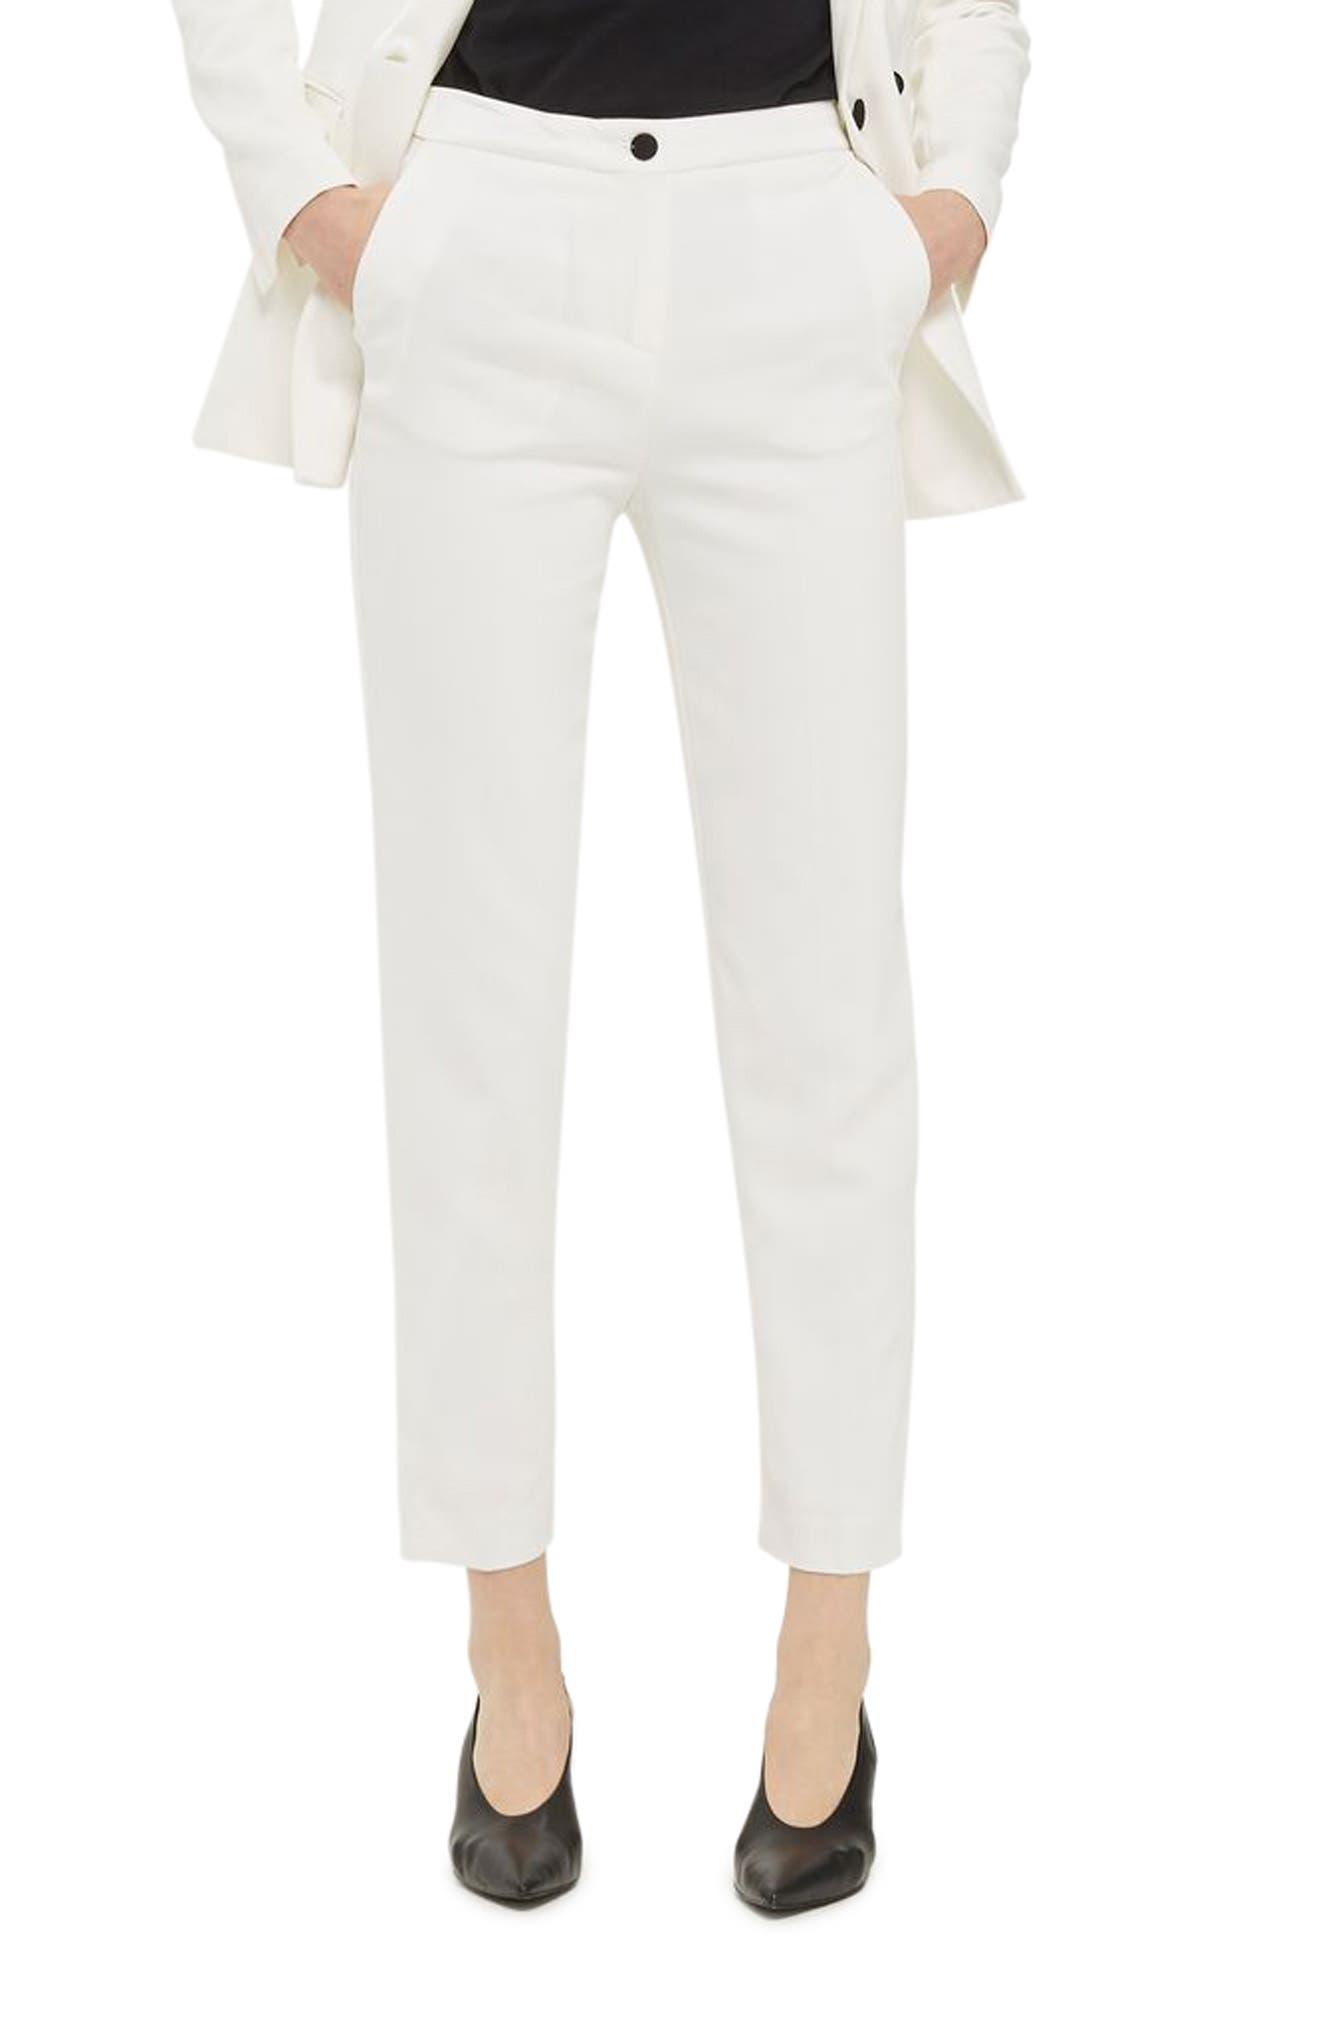 Alternate Image 1 Selected - Topshop Tux Suit Trousers